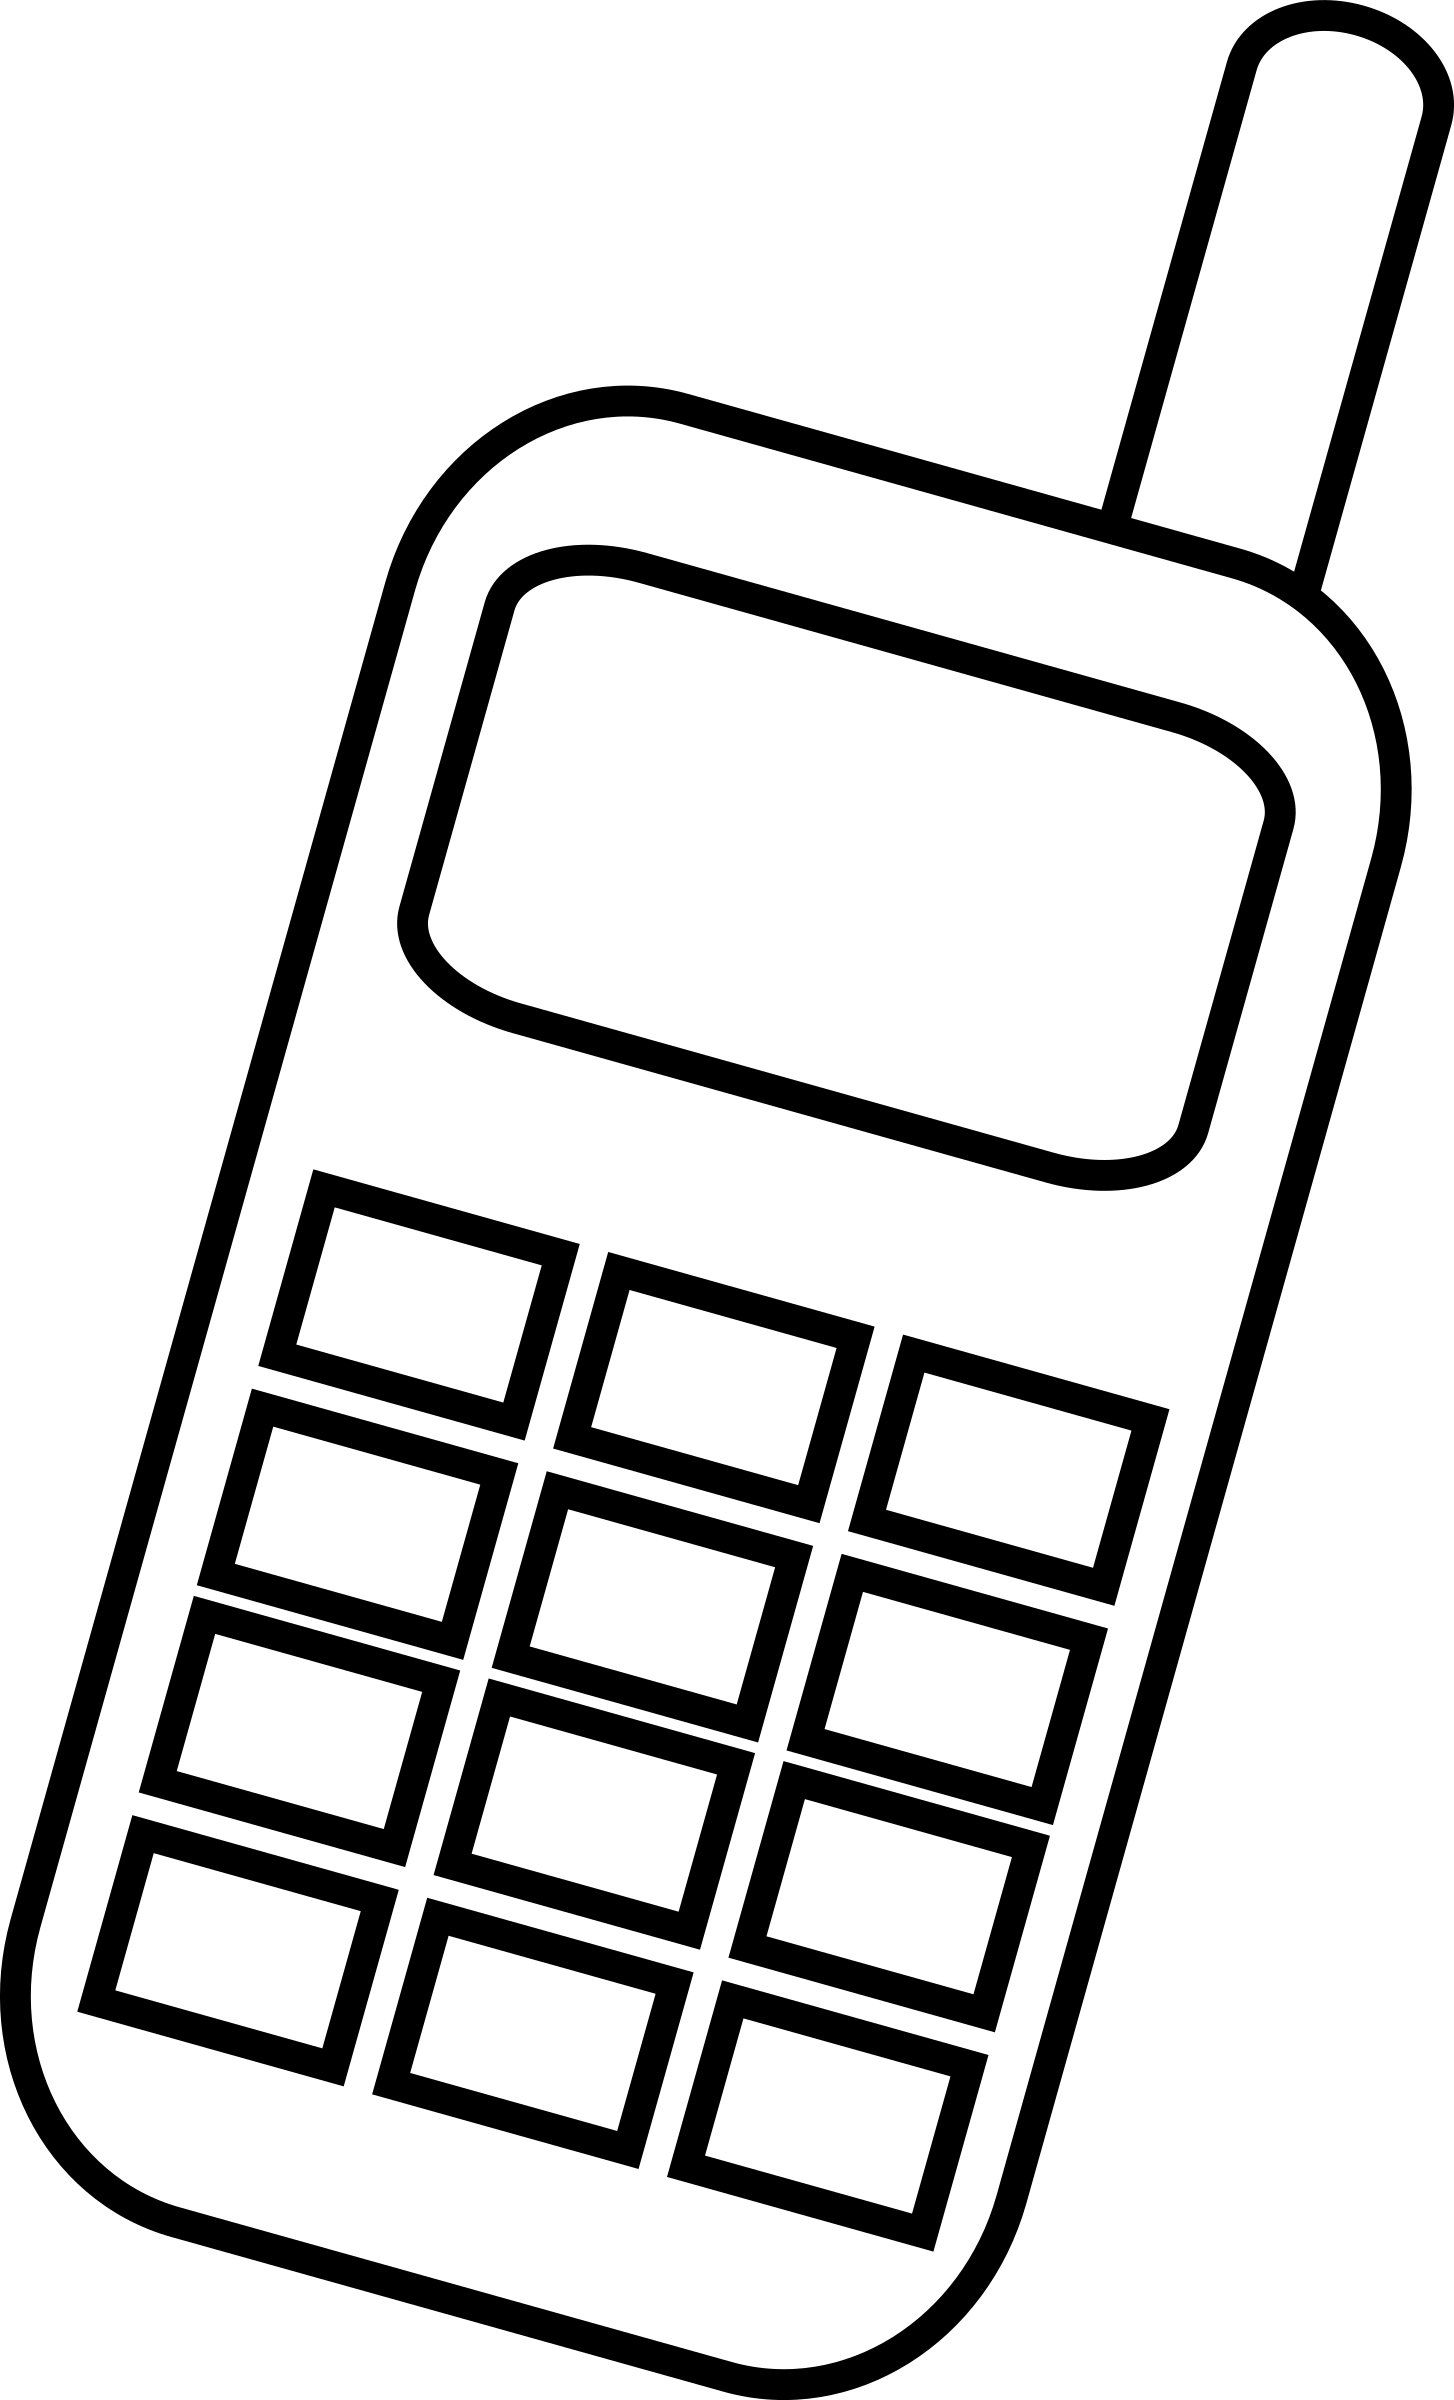 Phone clipart mobile icon. Big image png